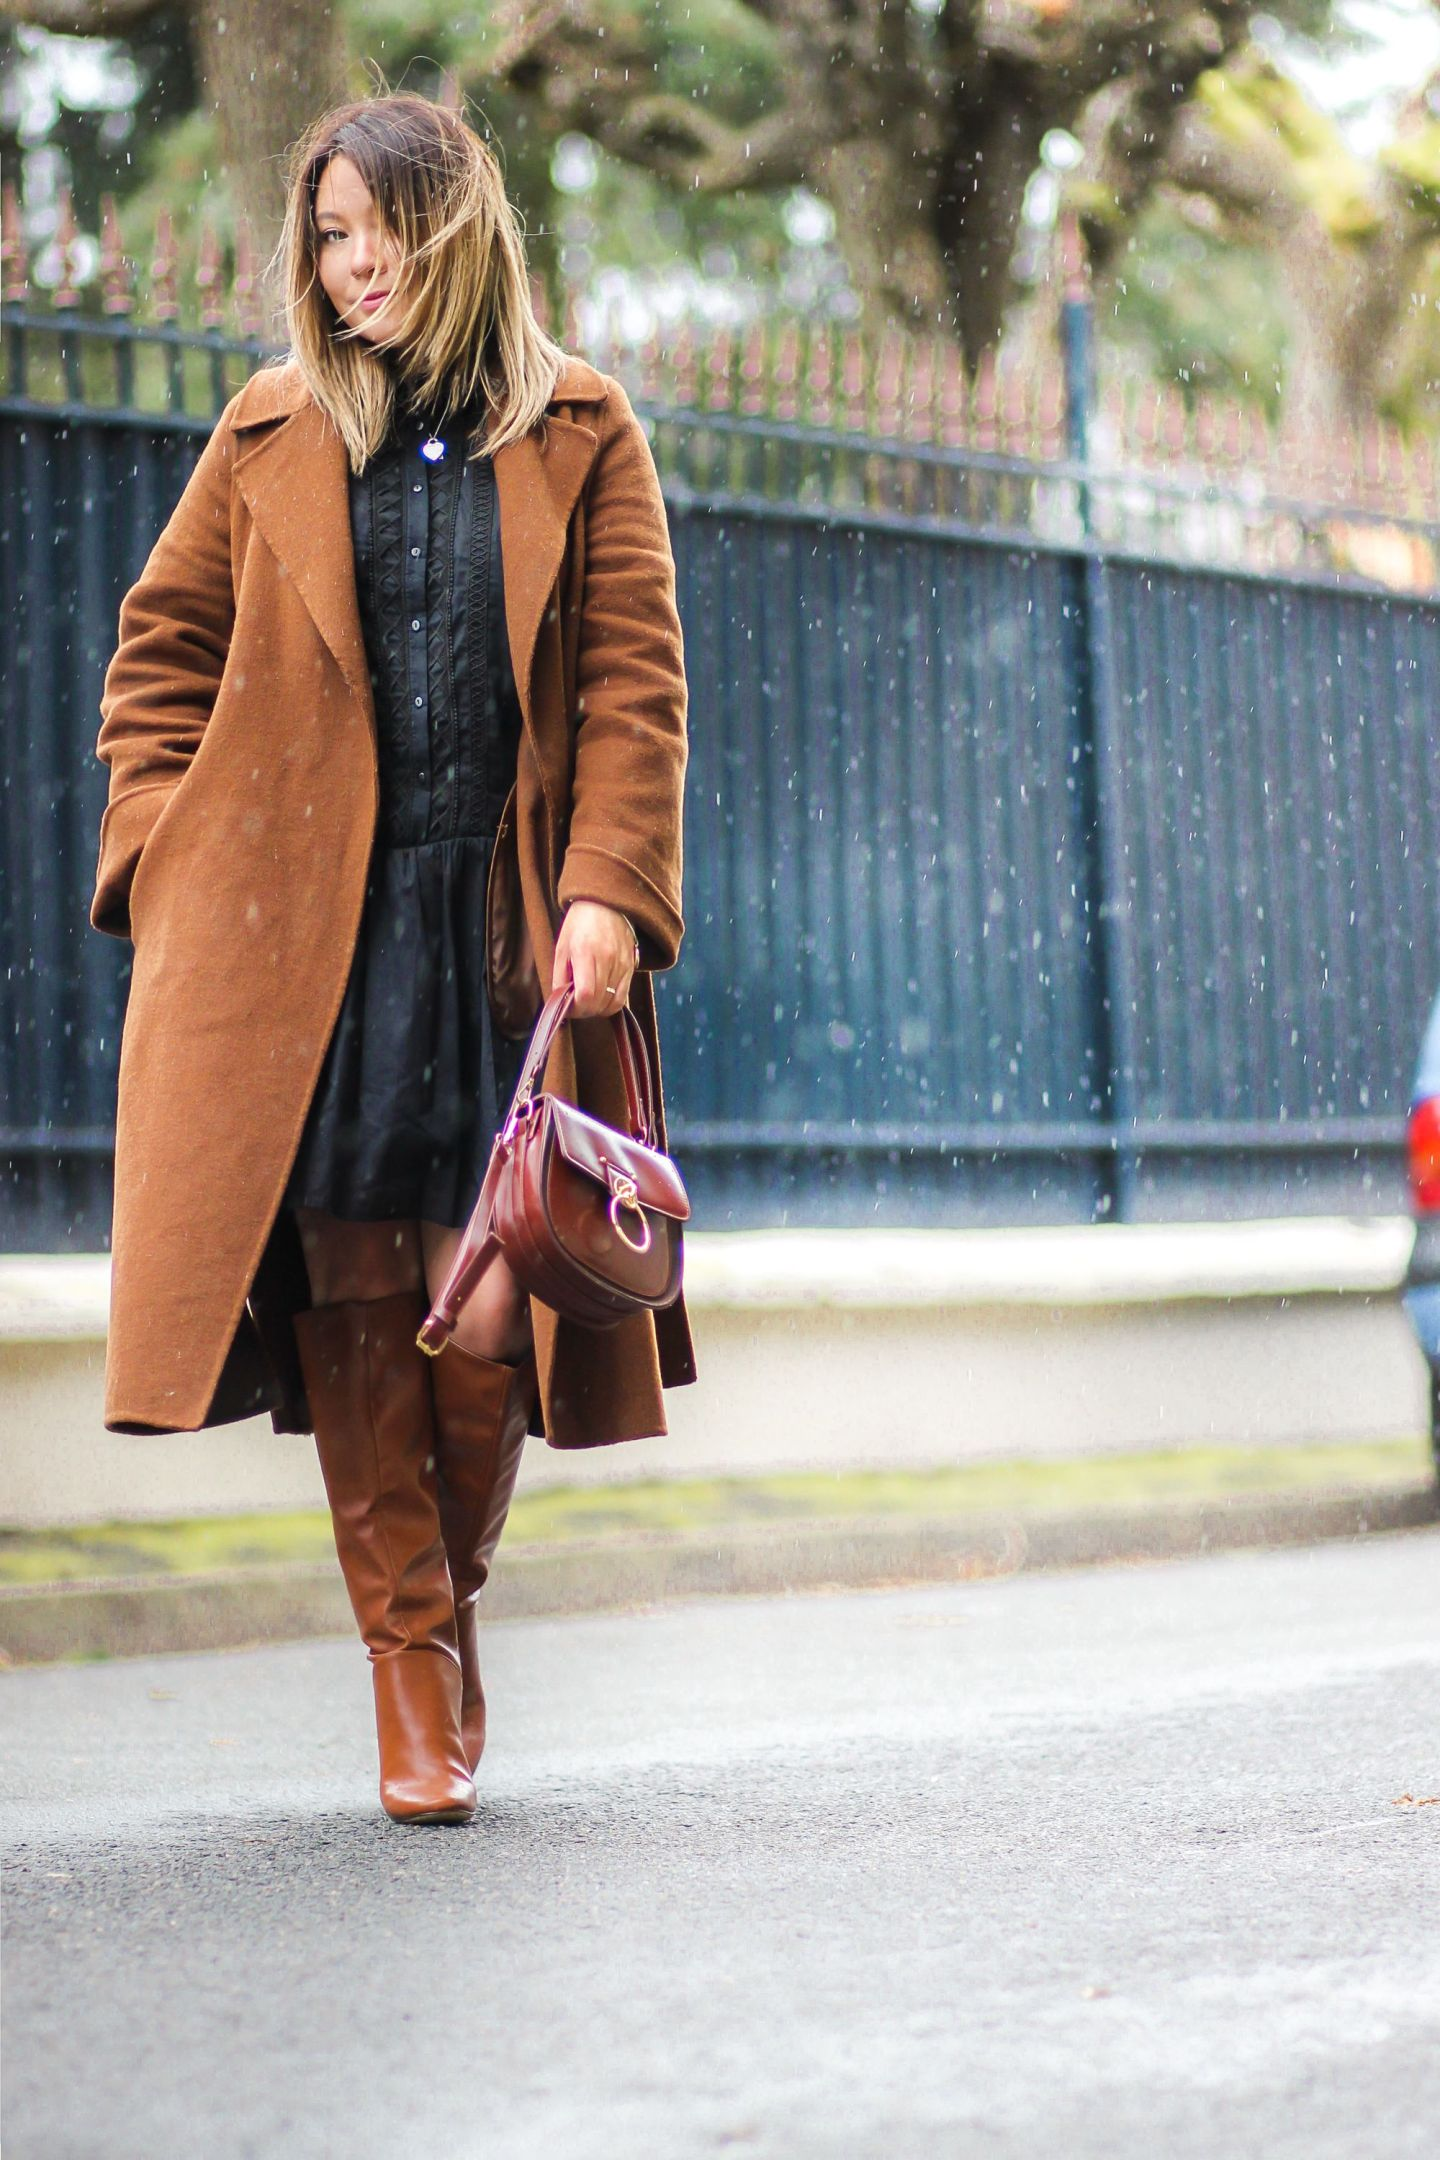 zara, manteau zara, manteau camel, the green ananas, blog mode, pinterest, tendance mode, blogueuse mode, bottes camel, hm, tess chloé, robe noire, la petite robe noire & new hair